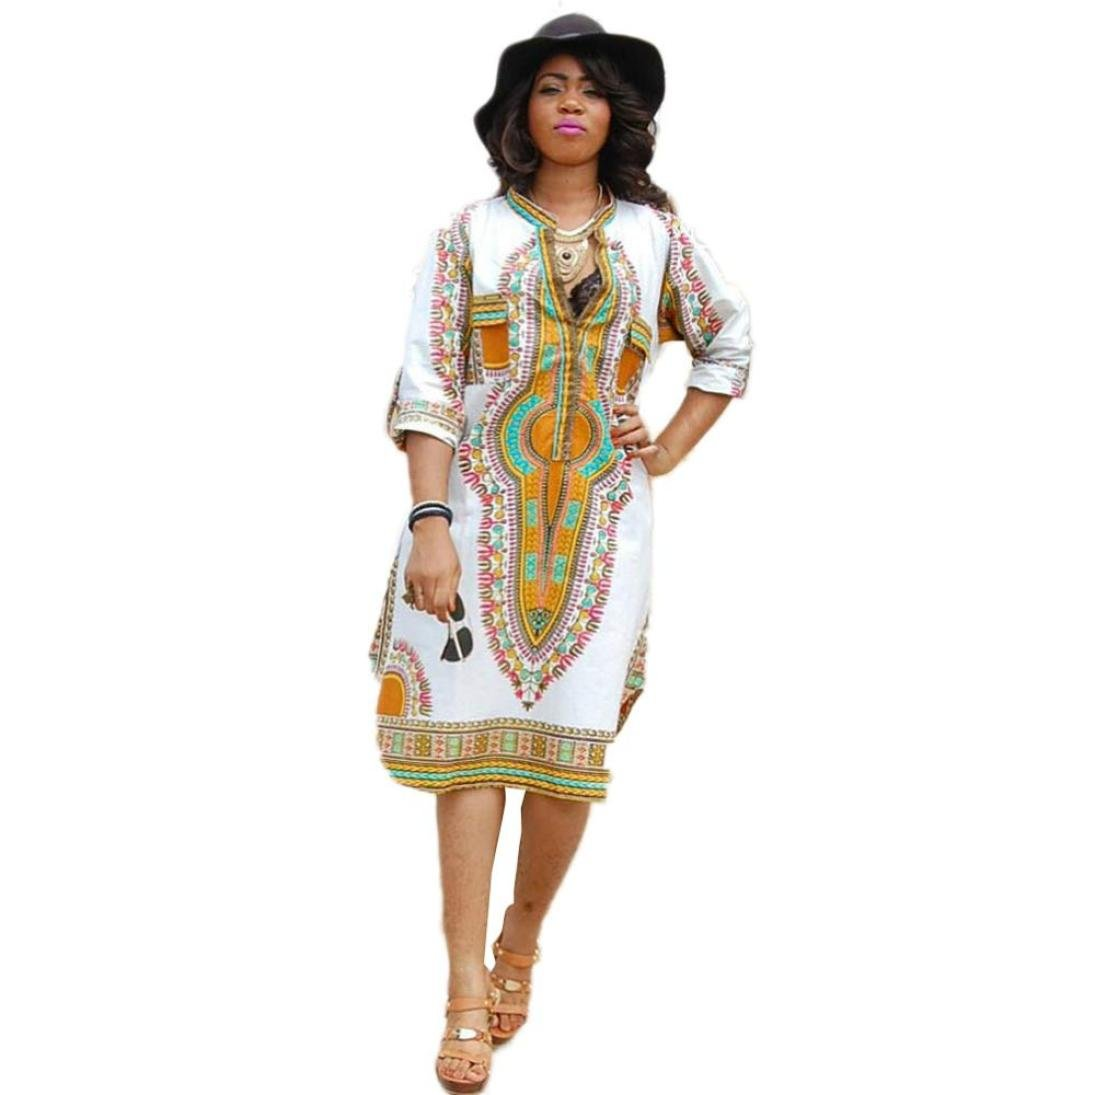 8b1d920e8 AmyDong Women's Dress, Women Summer Casual Deep V-Neck Traditional African  Print Party Dresses High-Stretch Slim Dress at Amazon Women's Clothing  store: